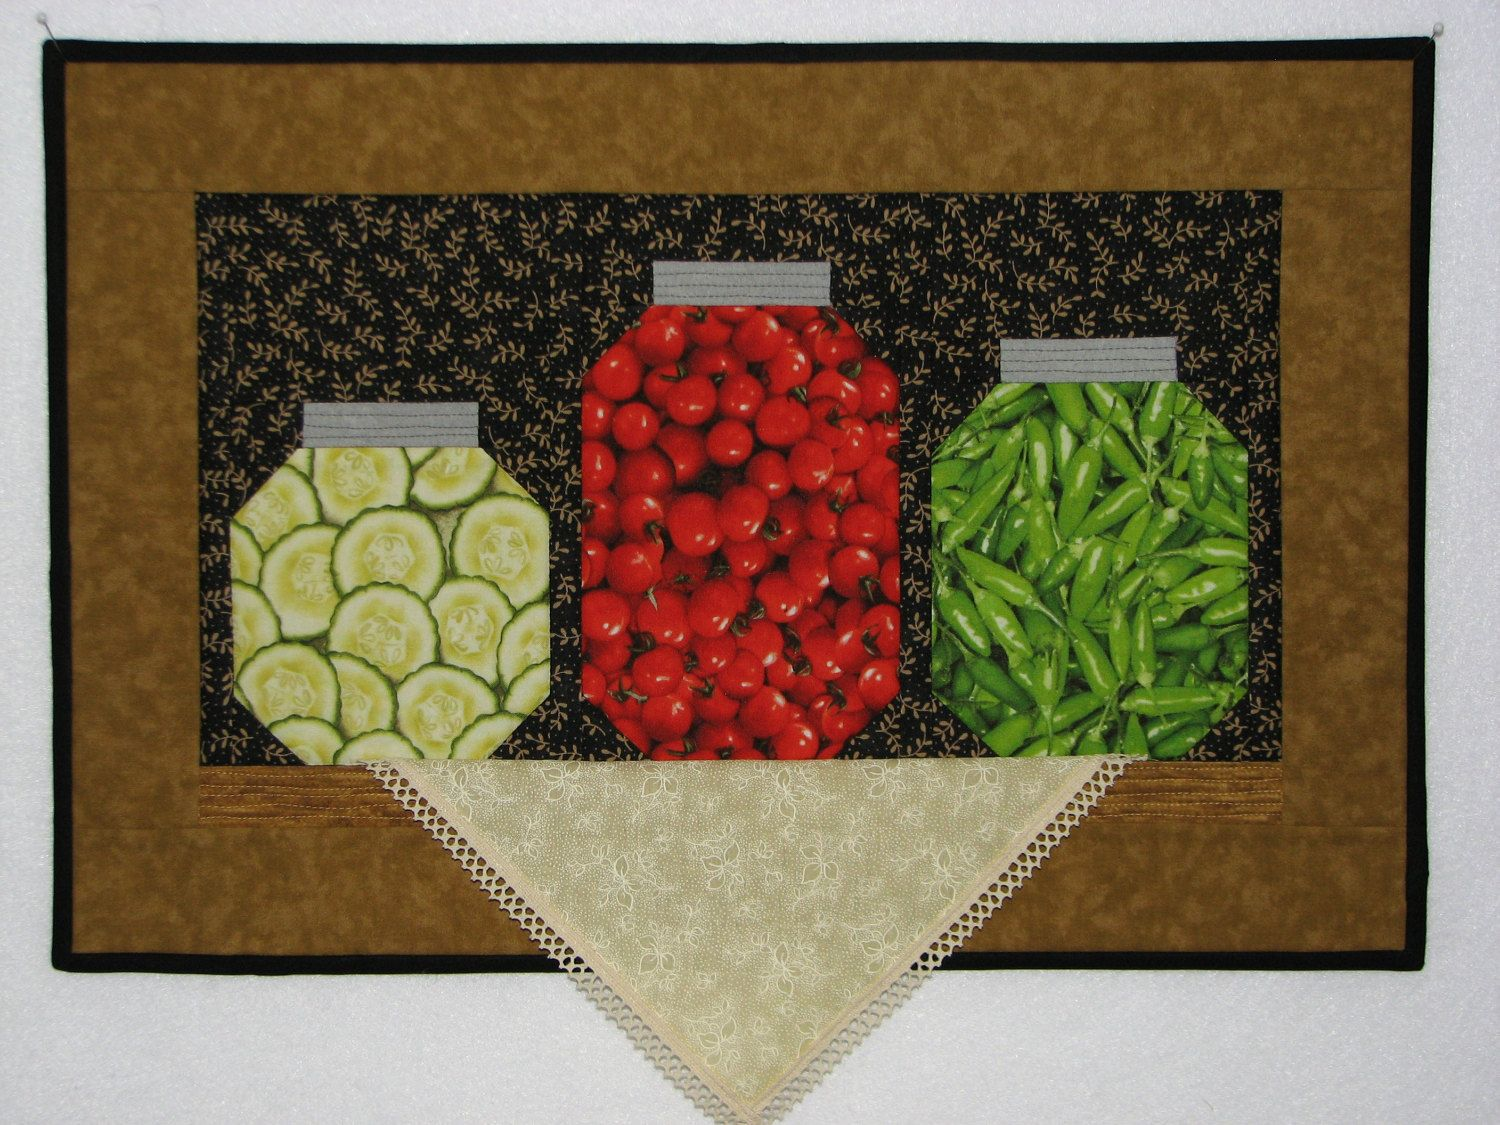 Folk Art Quilted Wall Hanging, Harvest Canning Pantry Shelf Still ... : handmade quilted wall hangings - Adamdwight.com